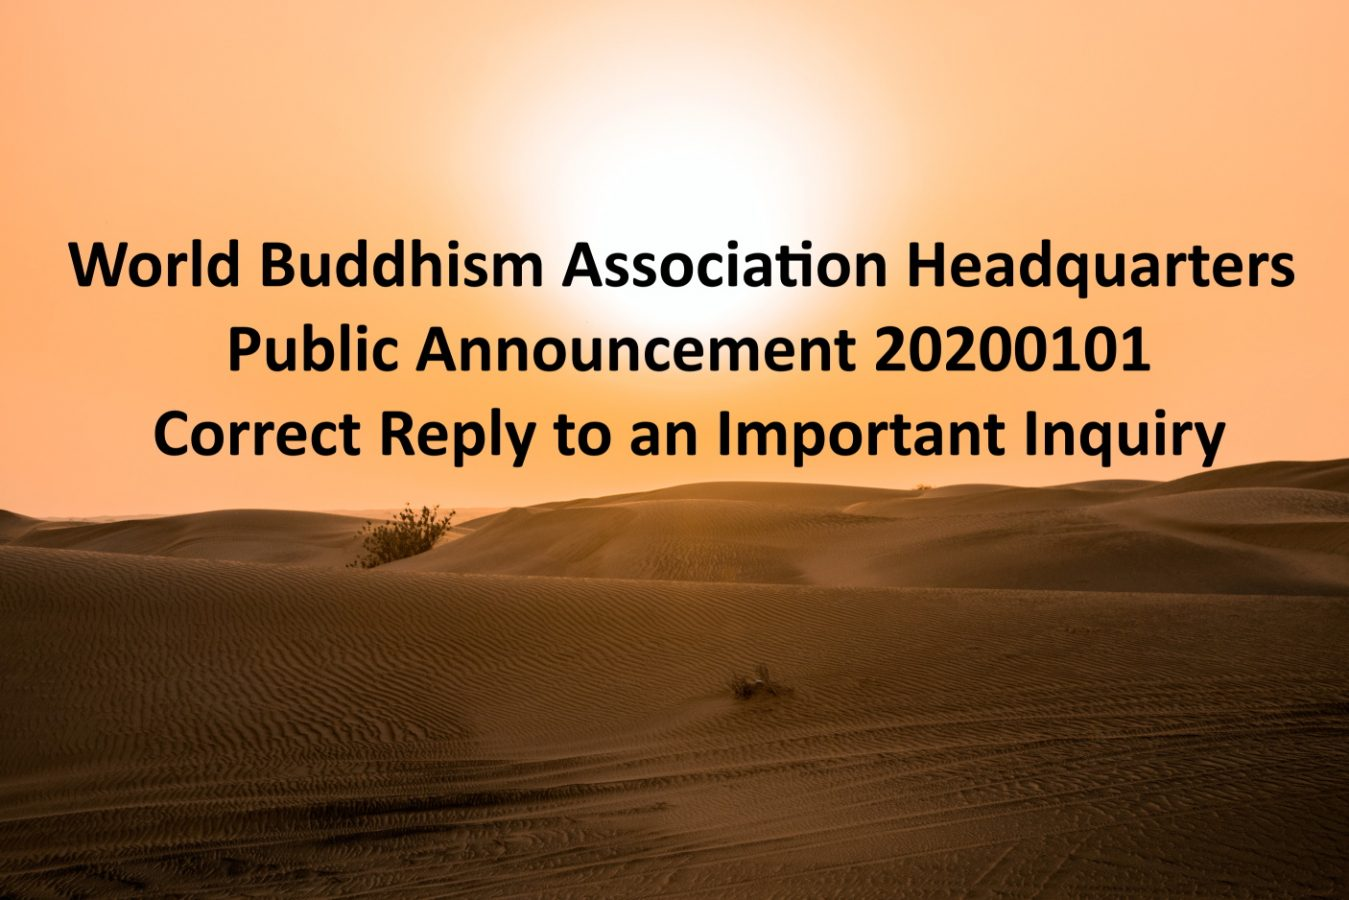 World Buddhism Association Headquarters Public Announcement 20200101